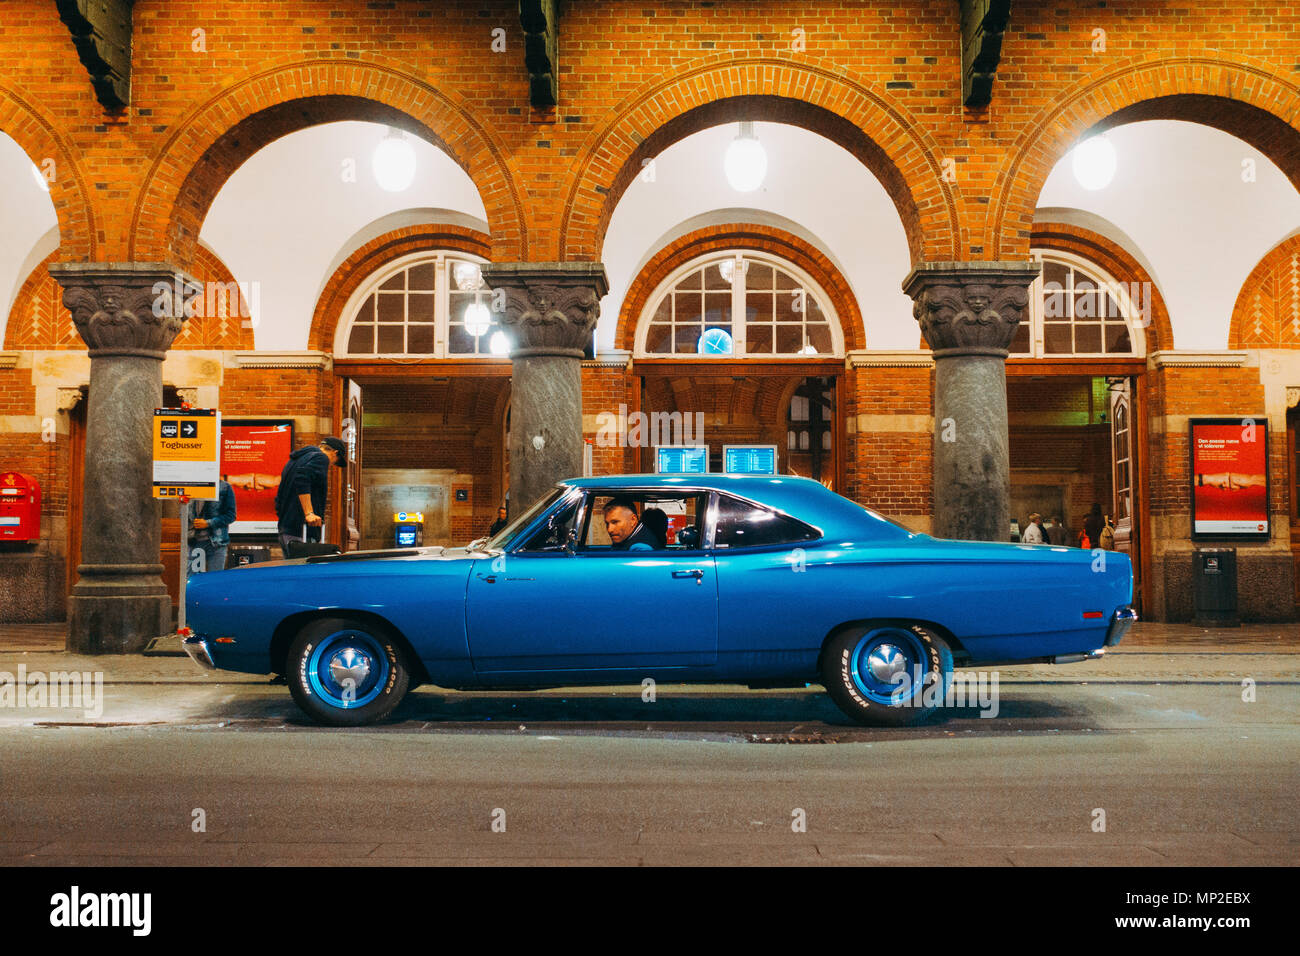 a classic 1969 Plymouth Road Runner muscle car waits outside Copenhagen Central Station, Denmark - Stock Image